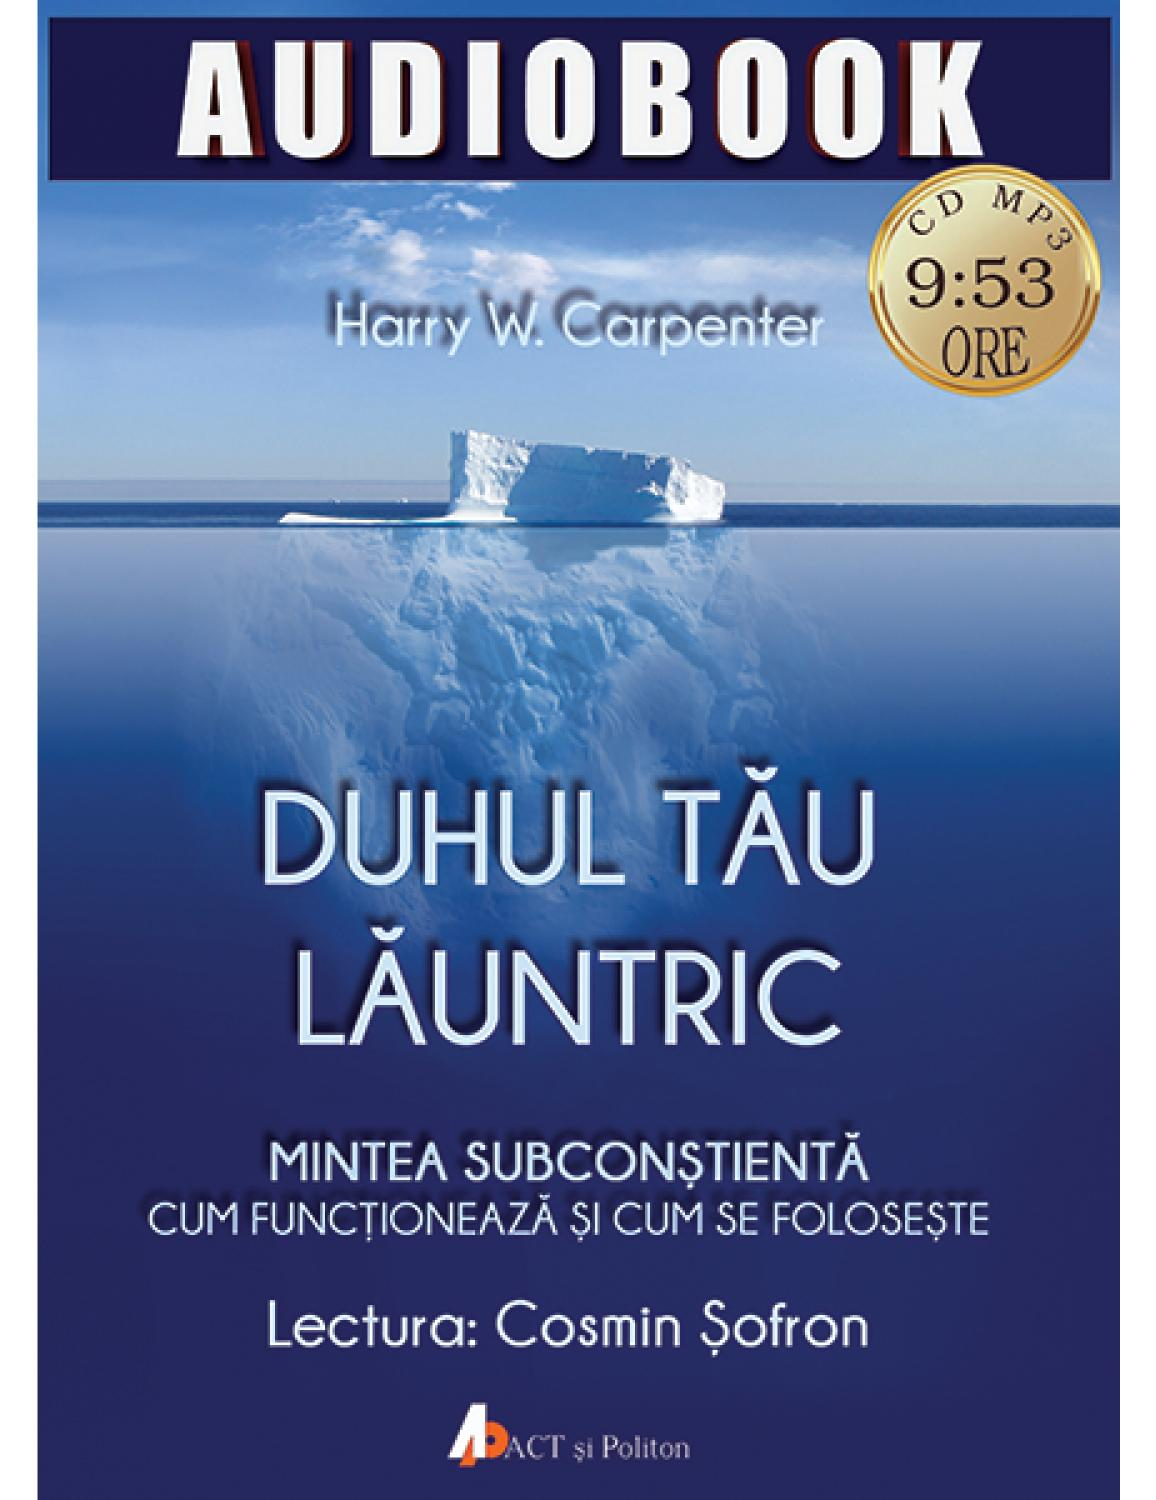 Audiobook - Duhul tau launtric - Harry W. Carpenter thumbnail